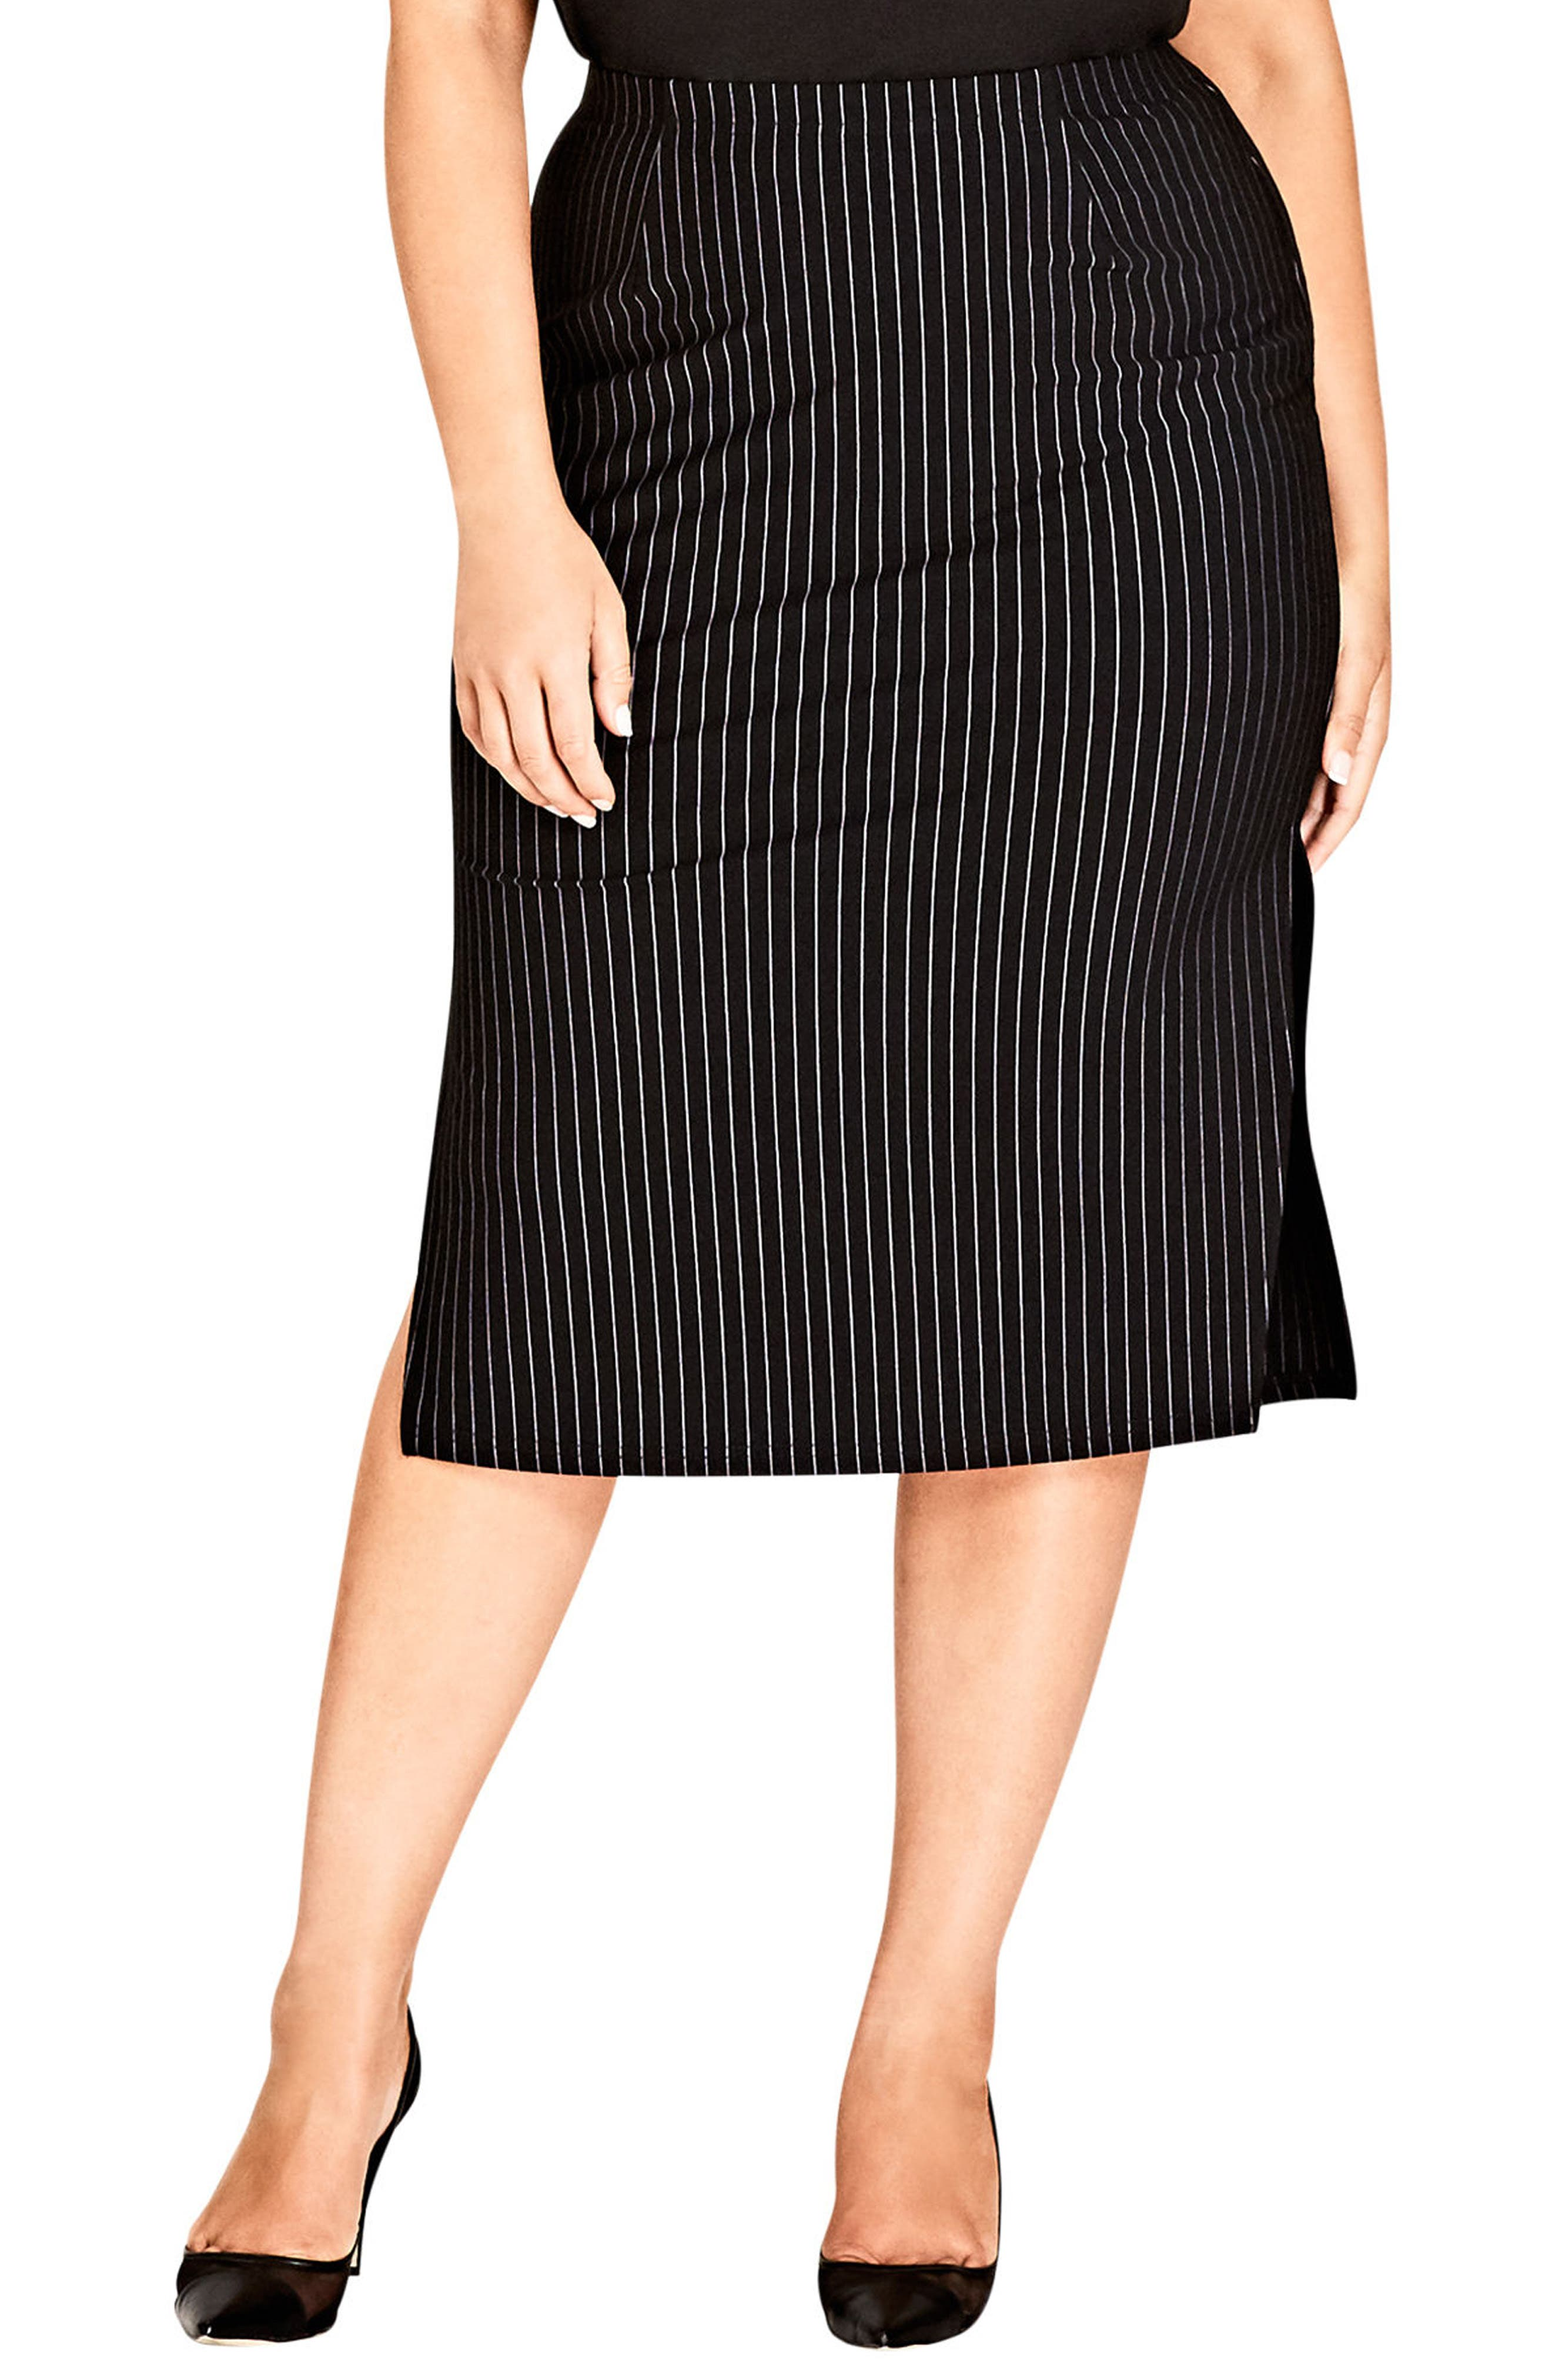 Chic City On Point Pencil skirt,                         Main,                         color,